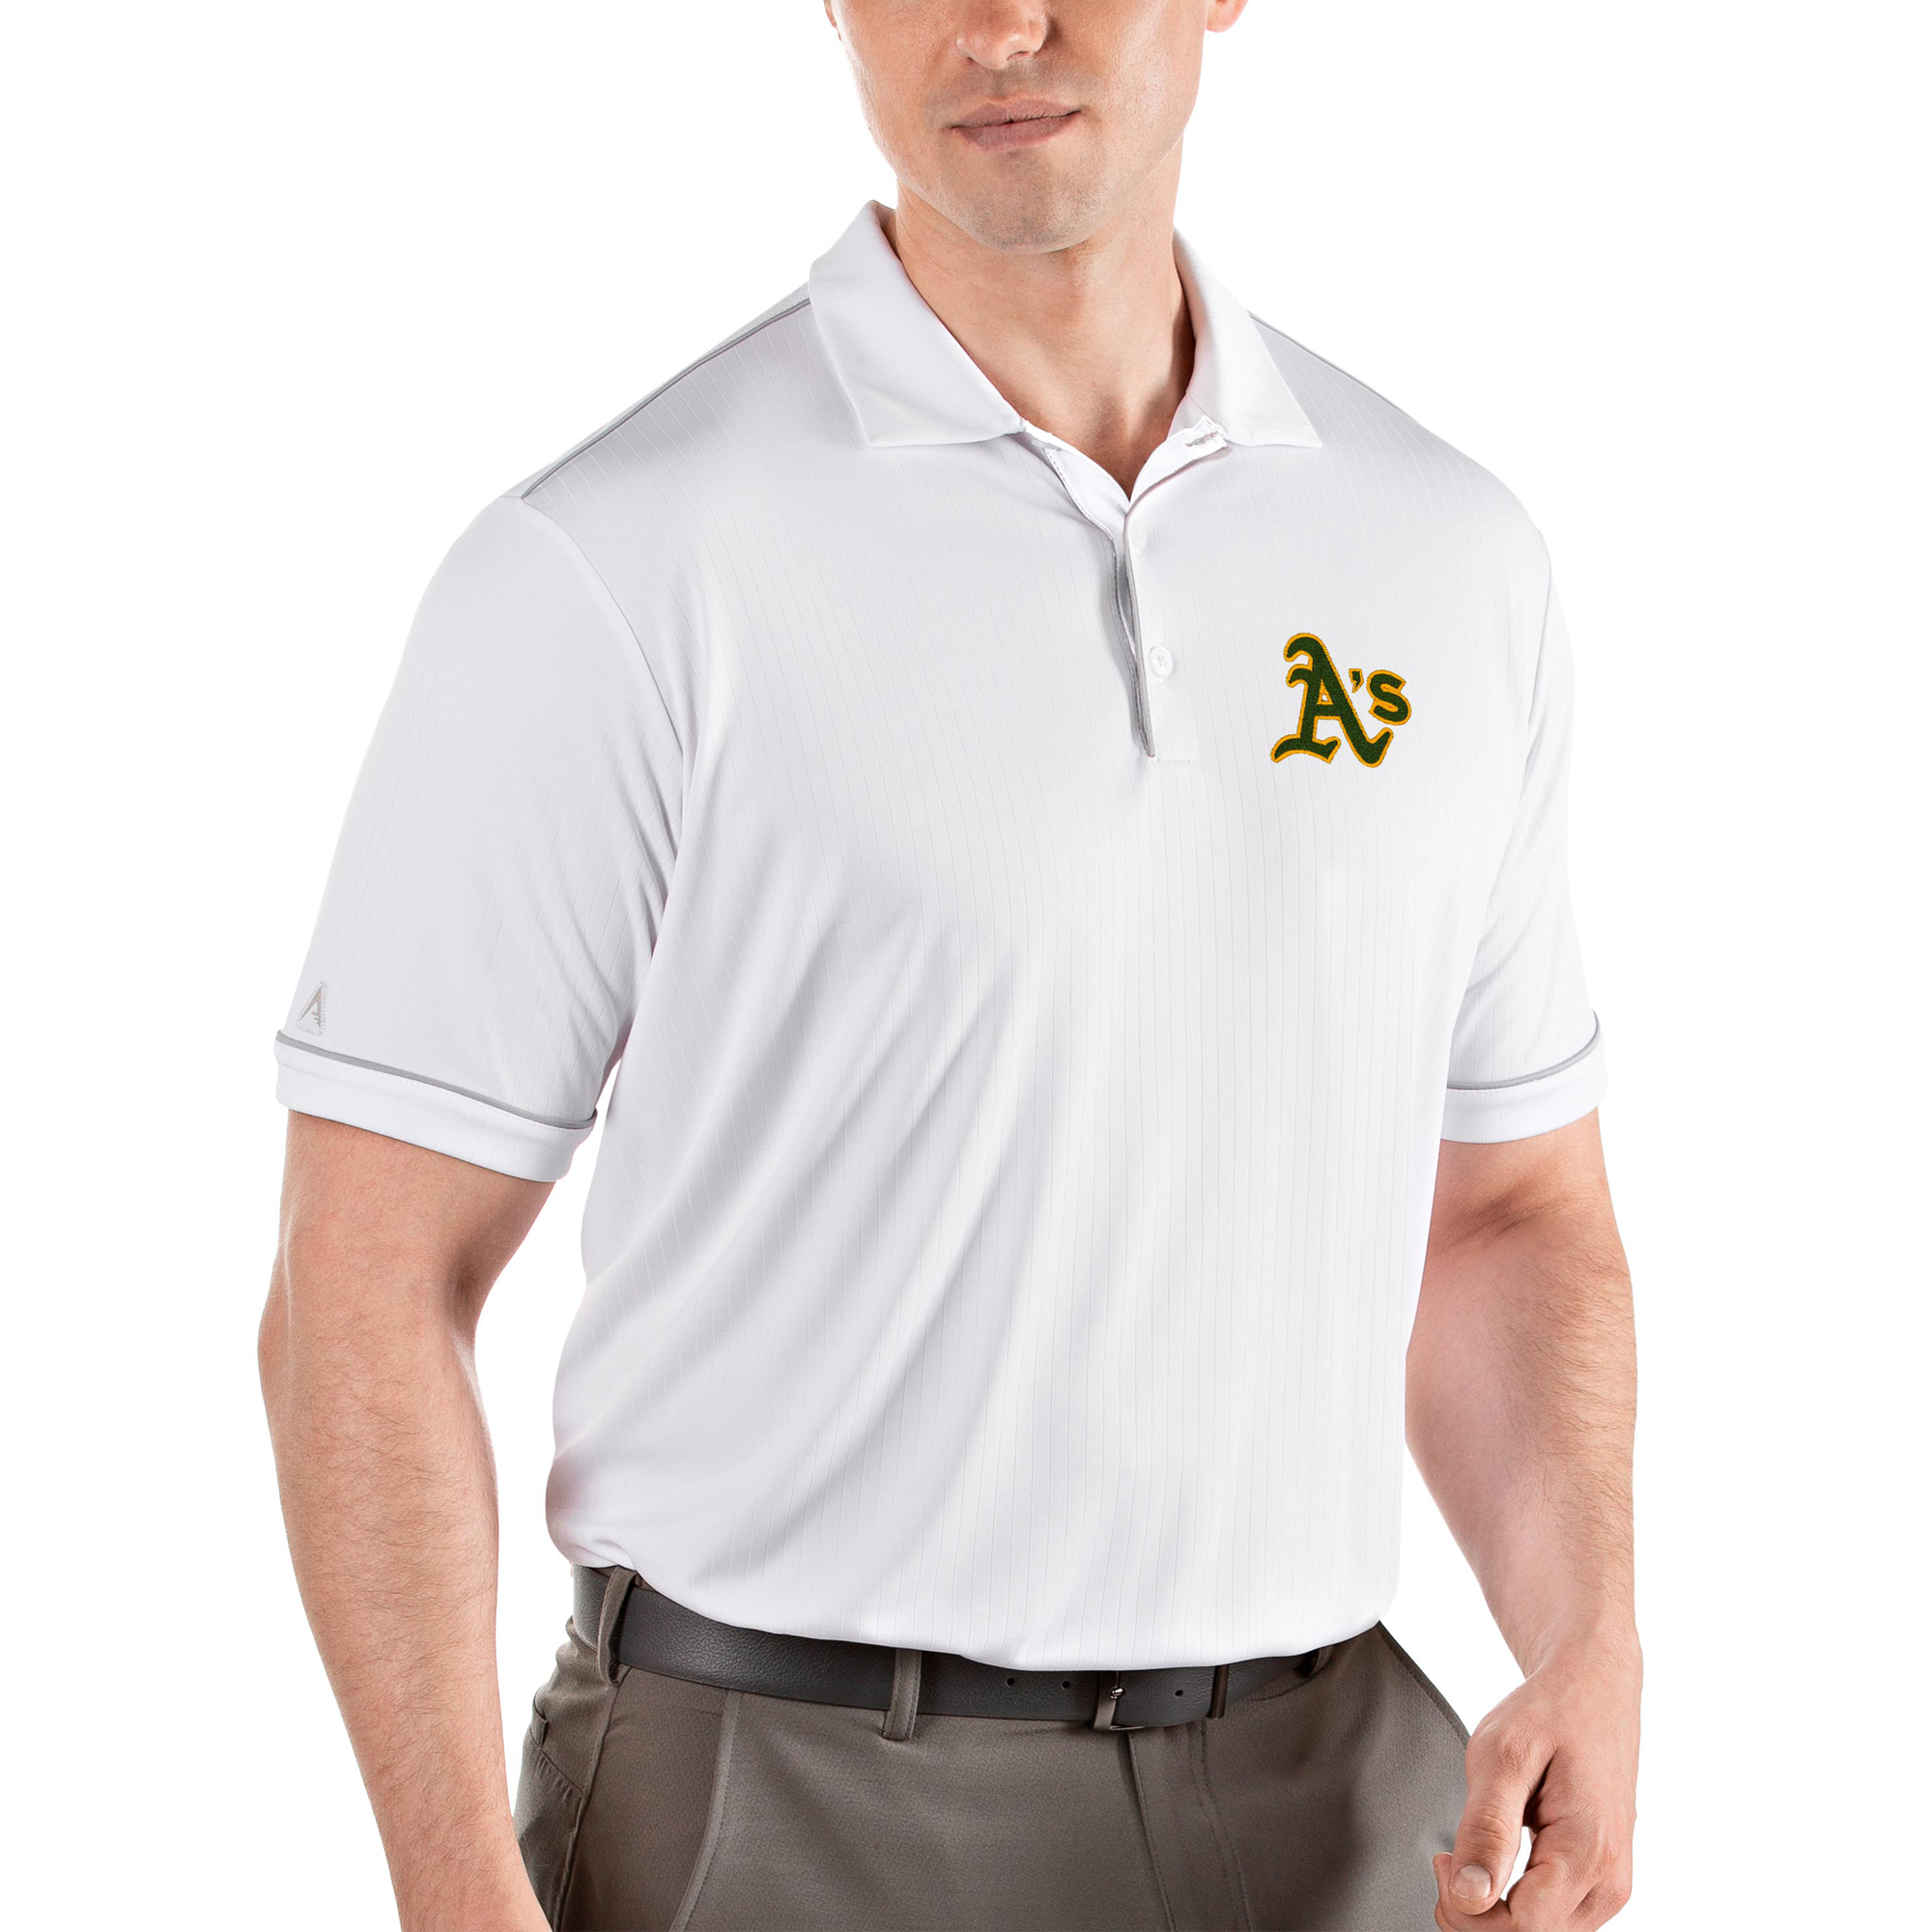 Oakland Athletics Antigua Salute Polo - White/Gray